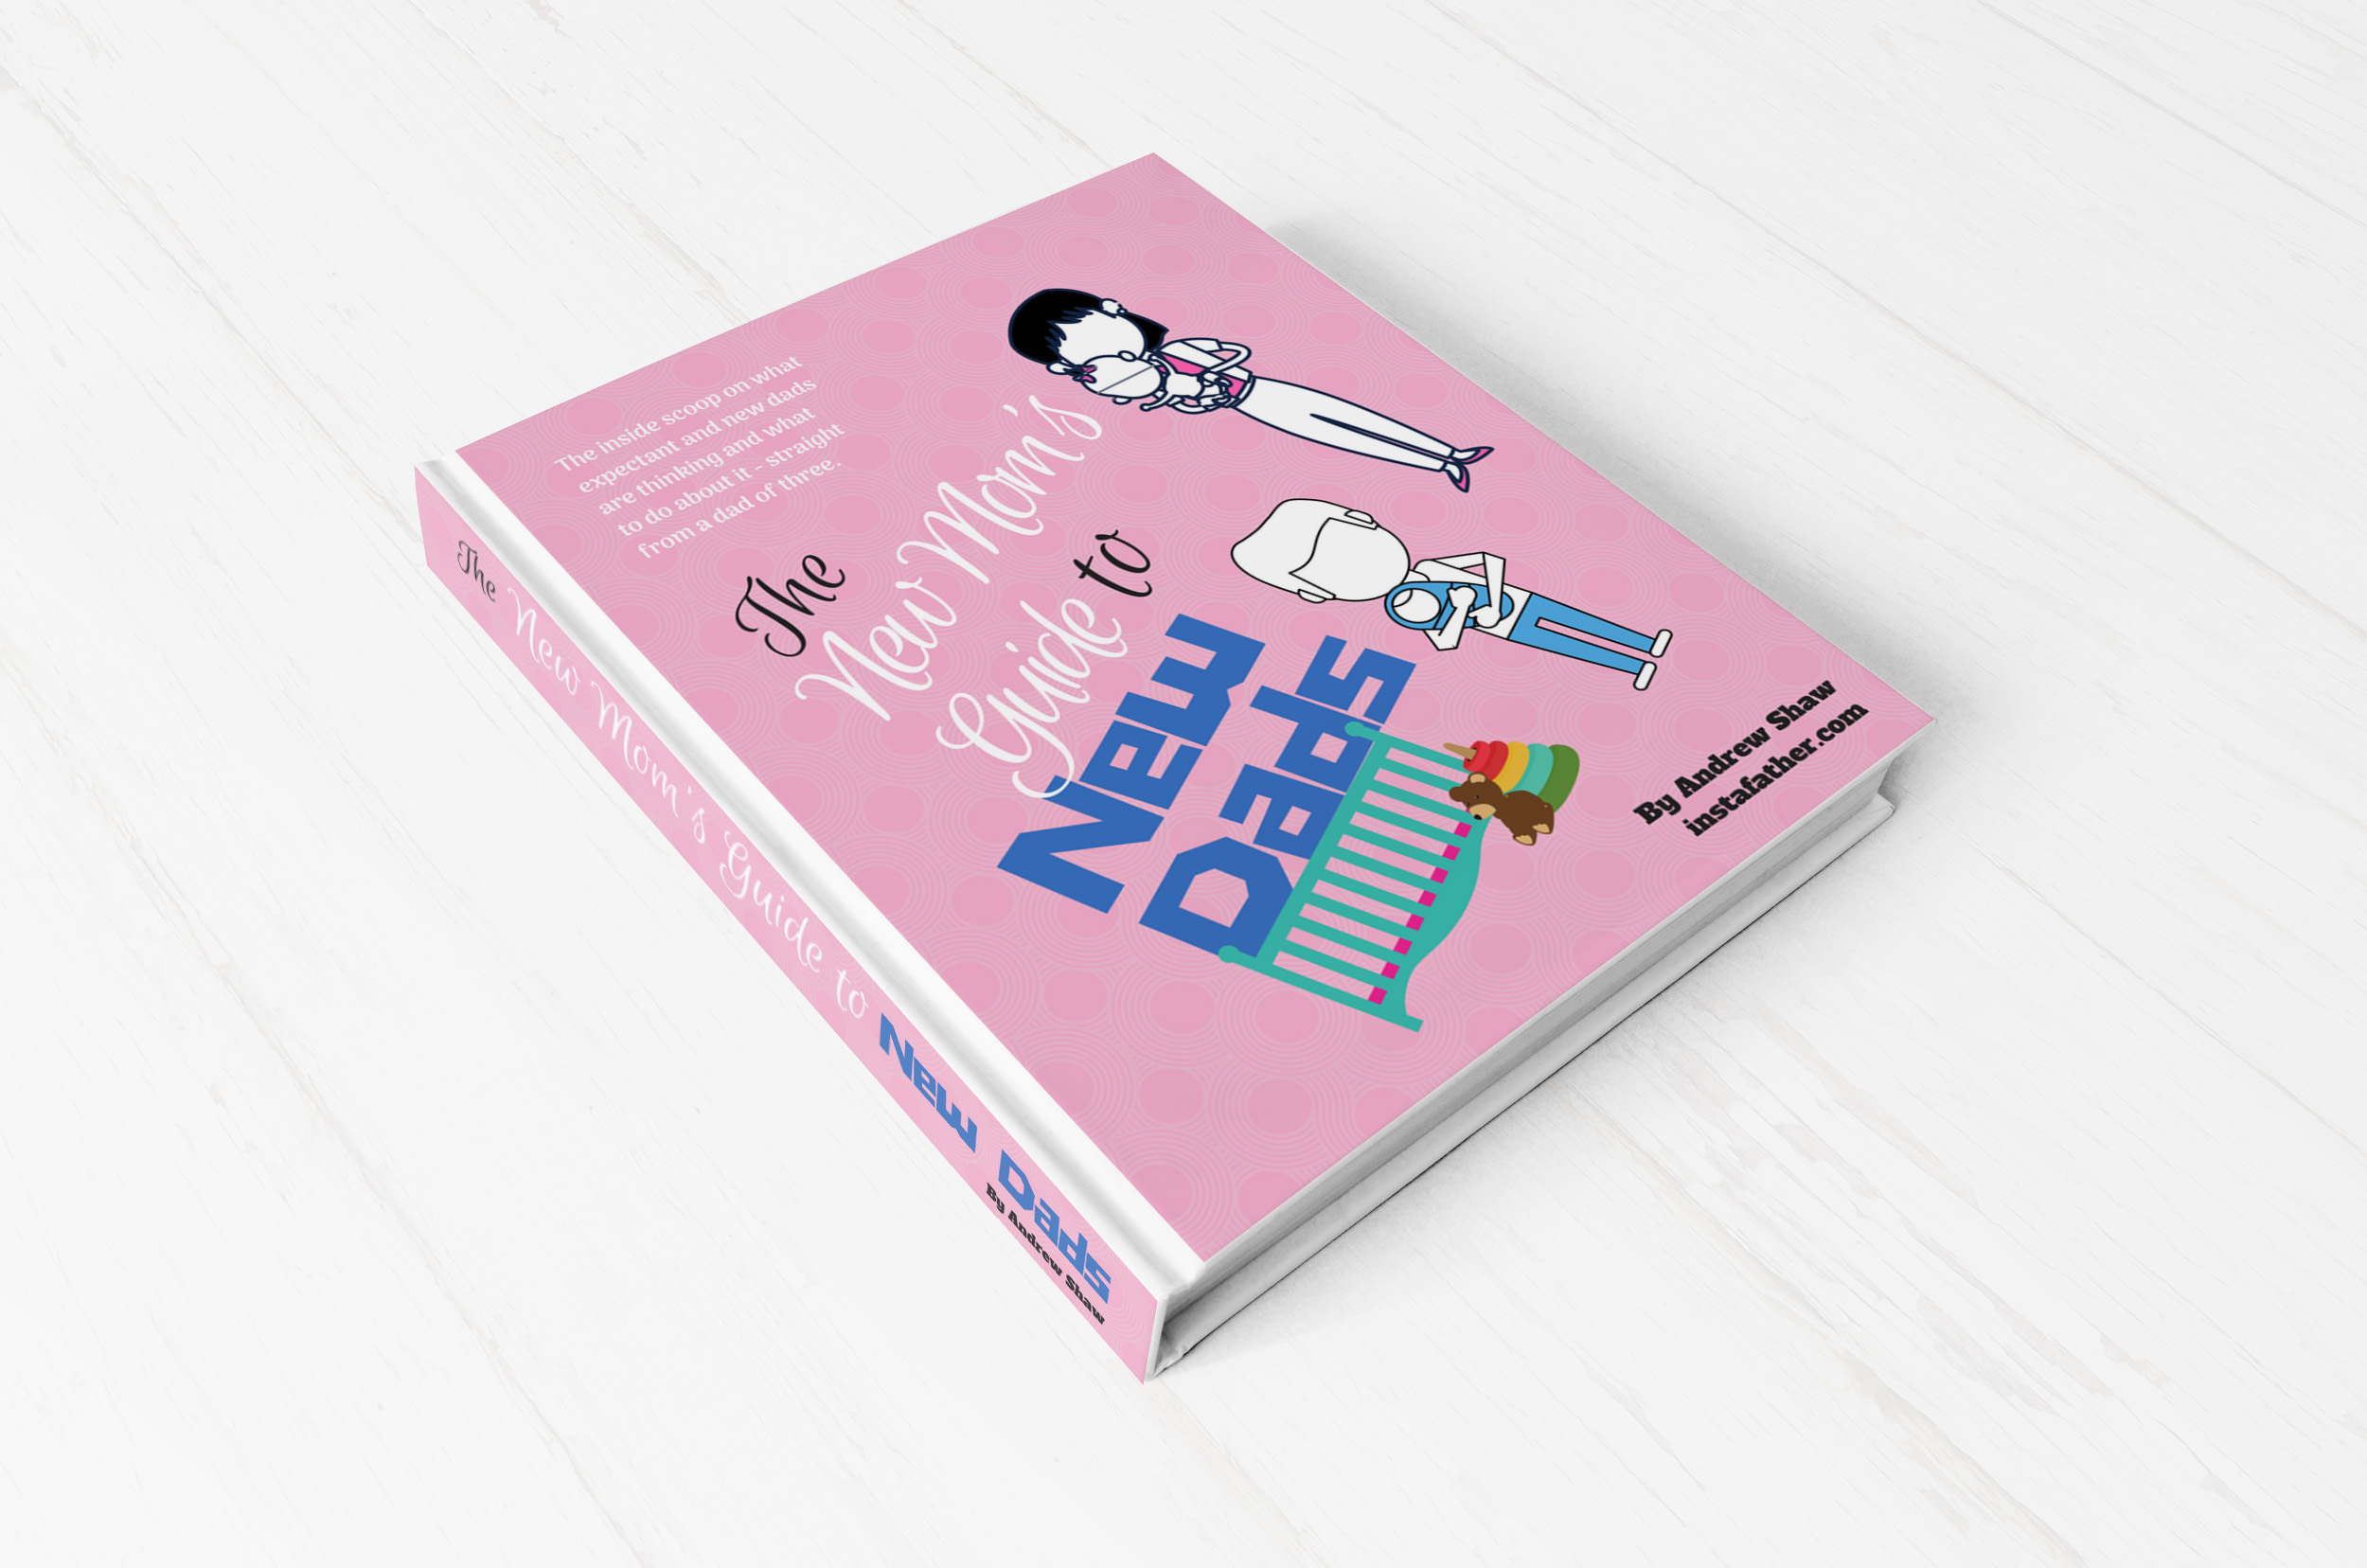 The New Mom's Guide to New Dads - Read a sample chapter of my upcoming book, and sign up to be the first to know when it's released!